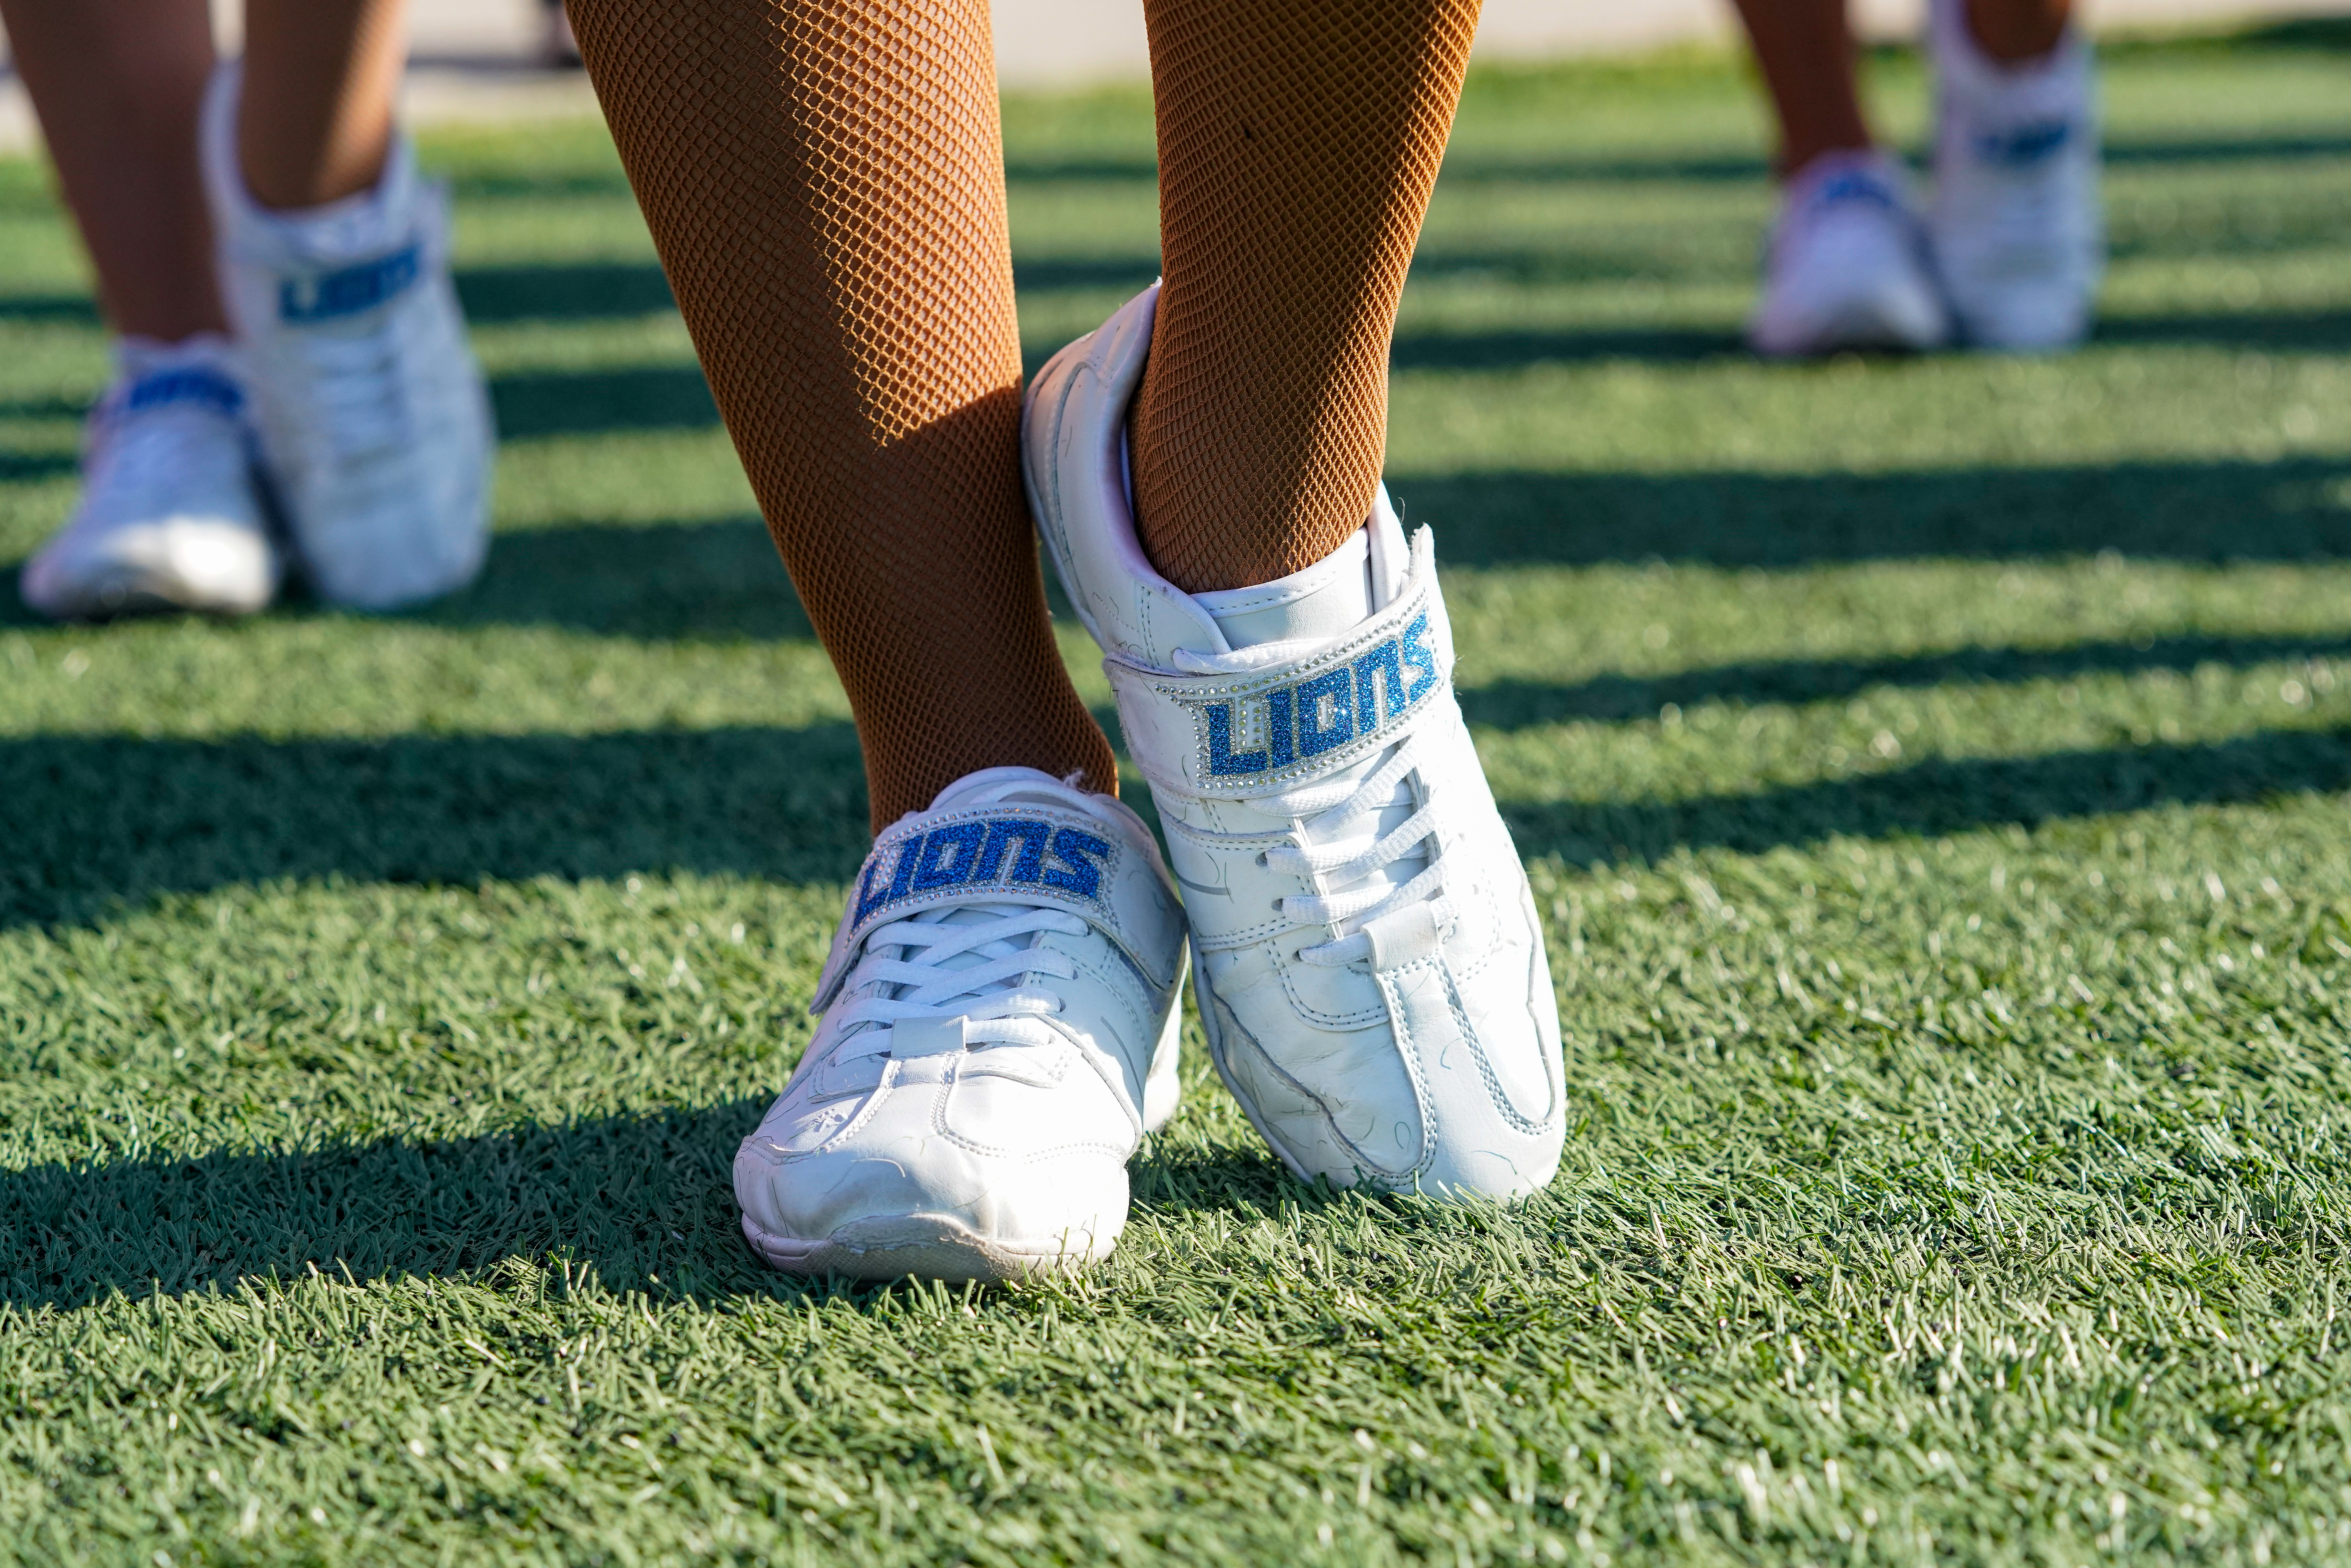 A cheerleader's shoes are imprinted with the word Lions